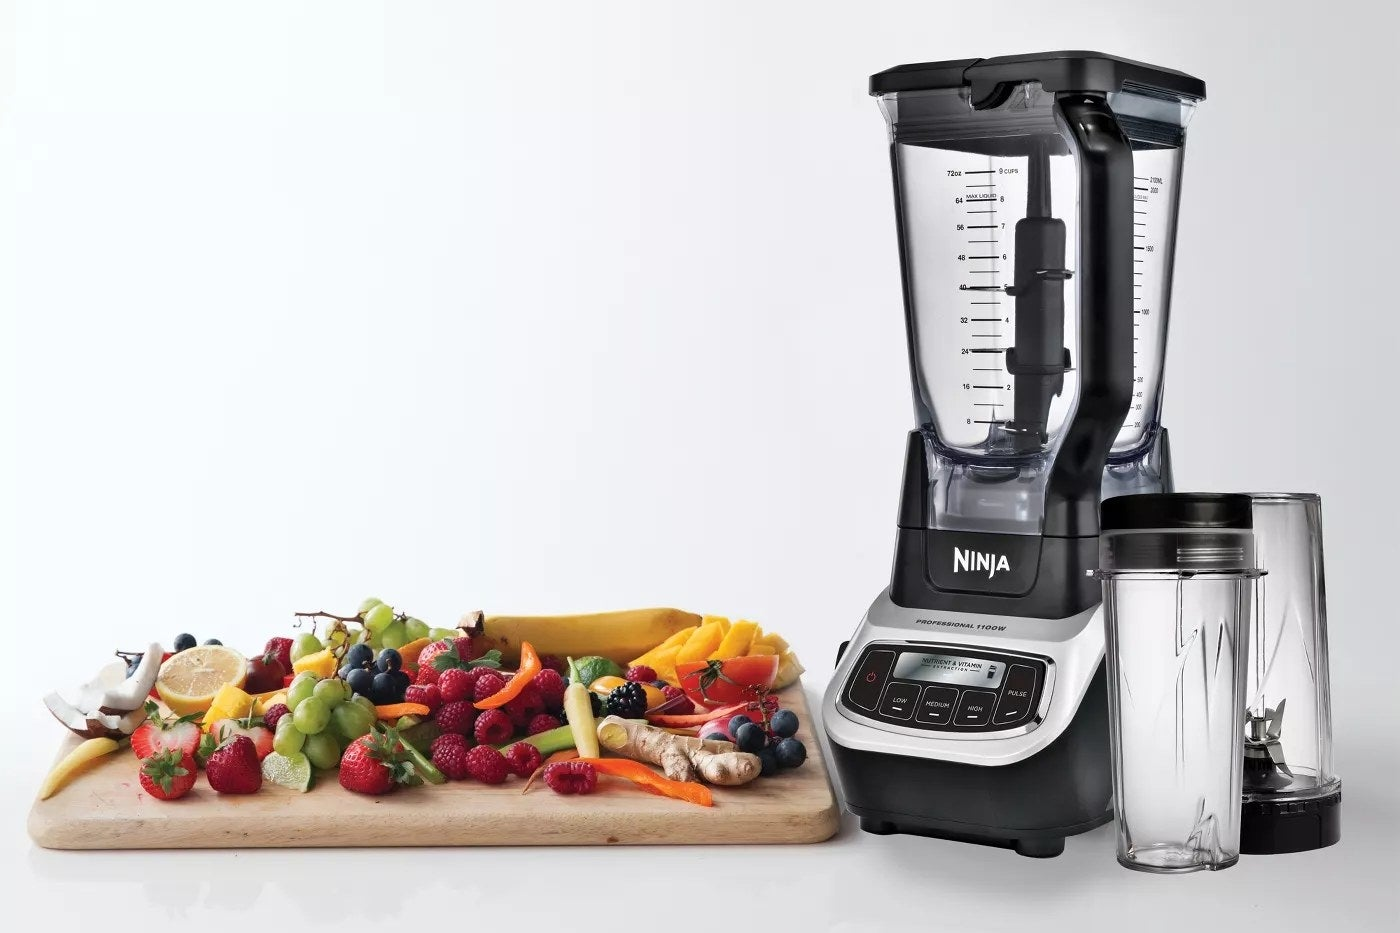 The Ninja blender with two travel-sized cups